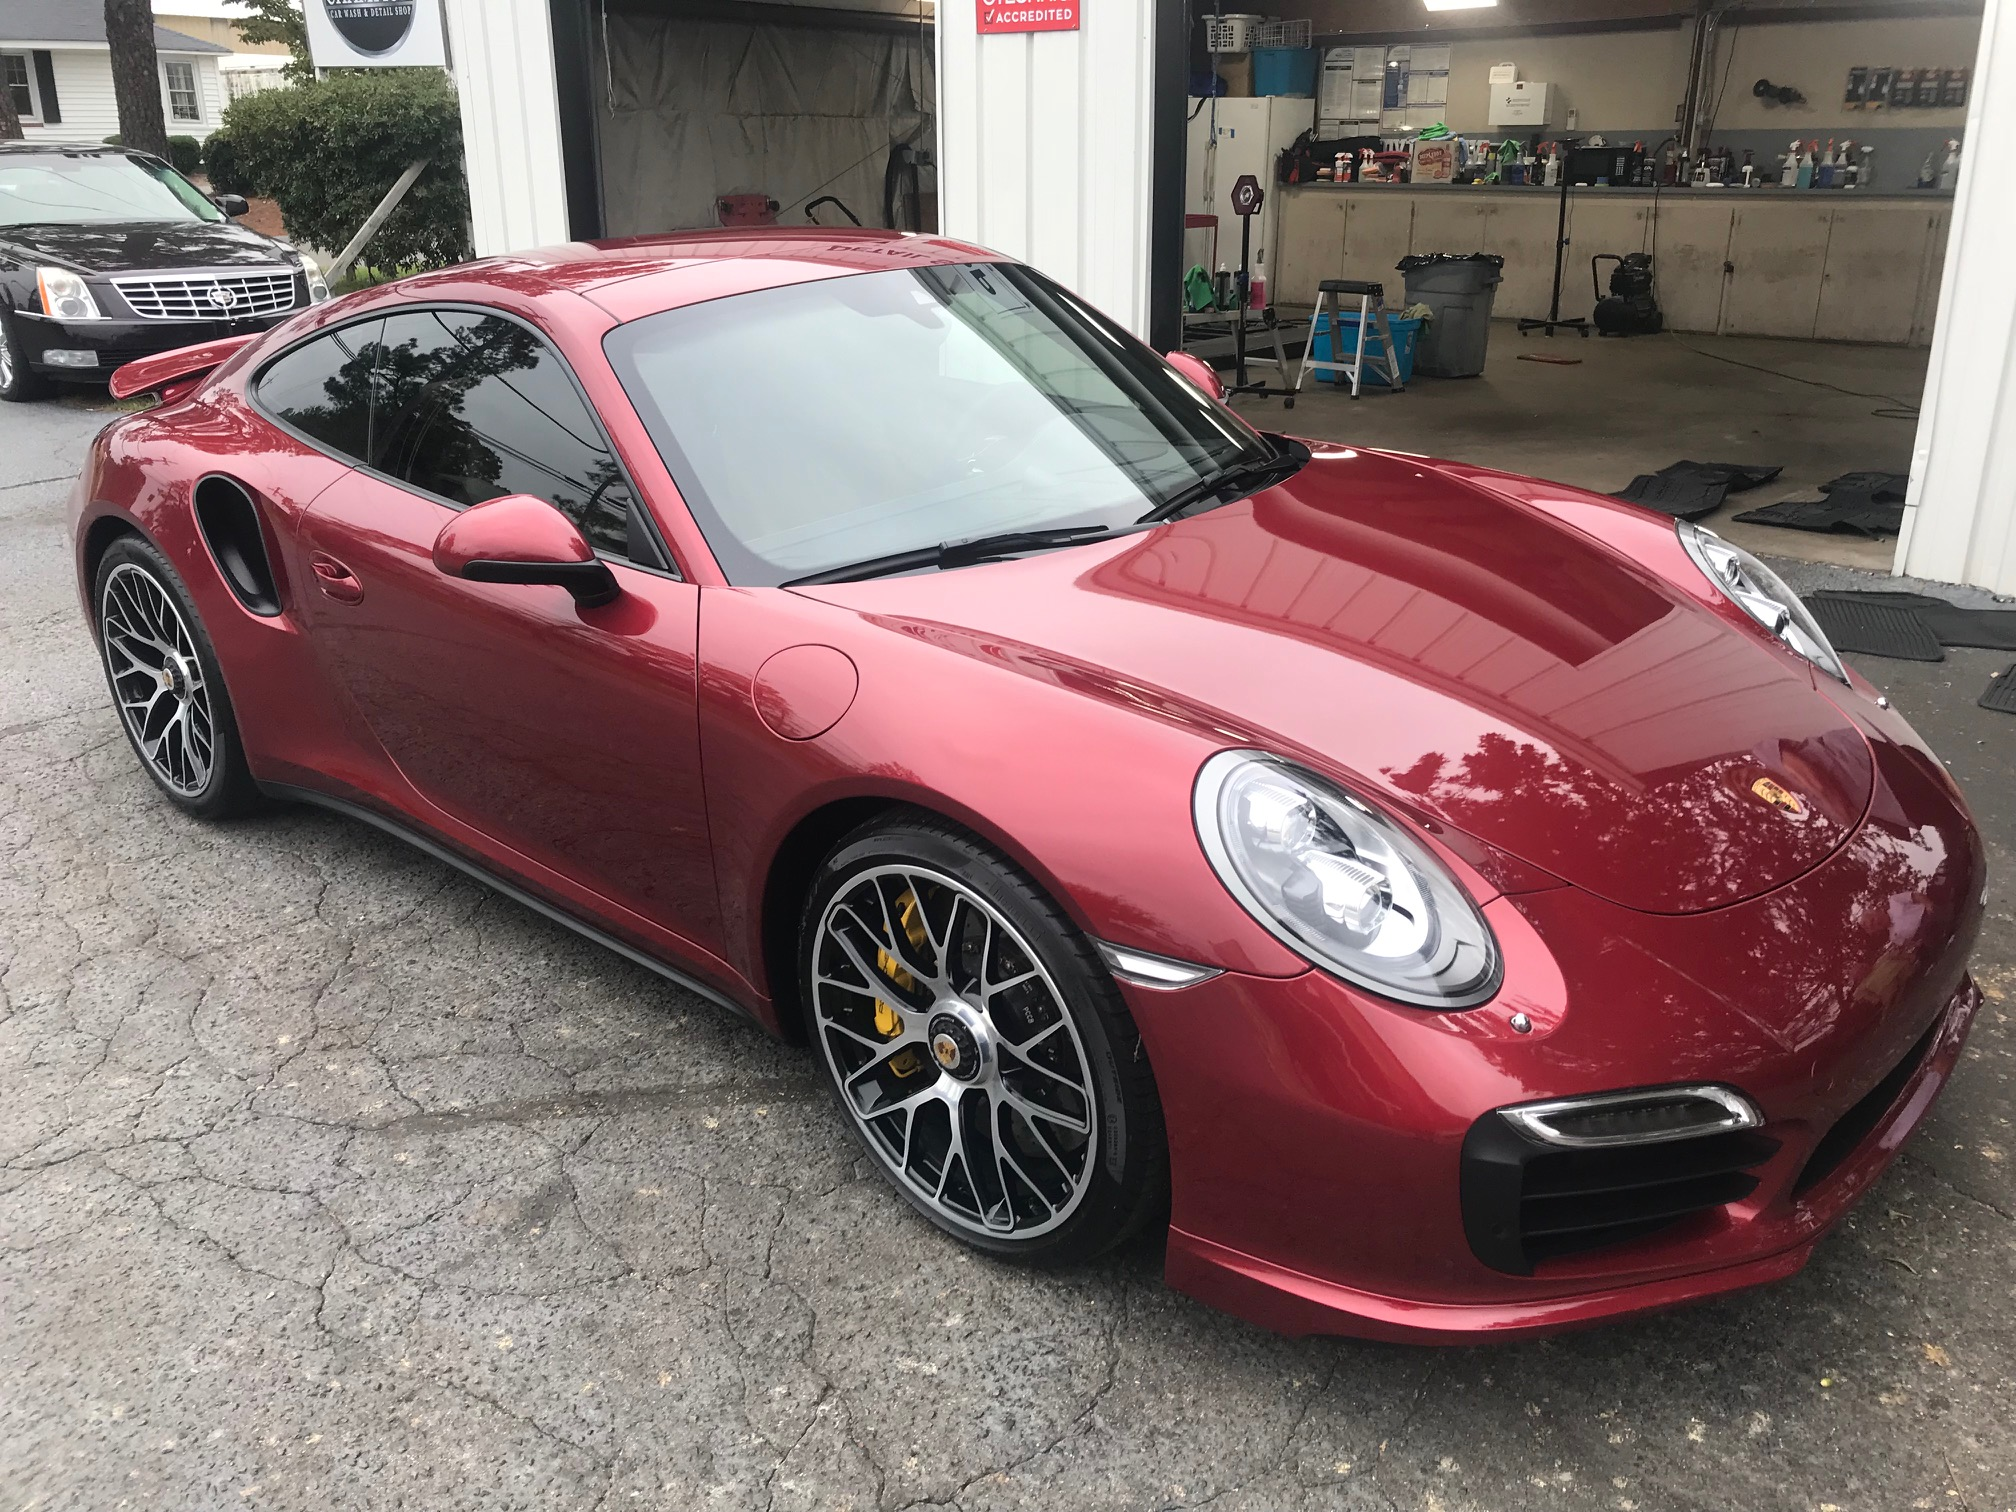 2015 Porsche 911 Turbo S in Ruby Red